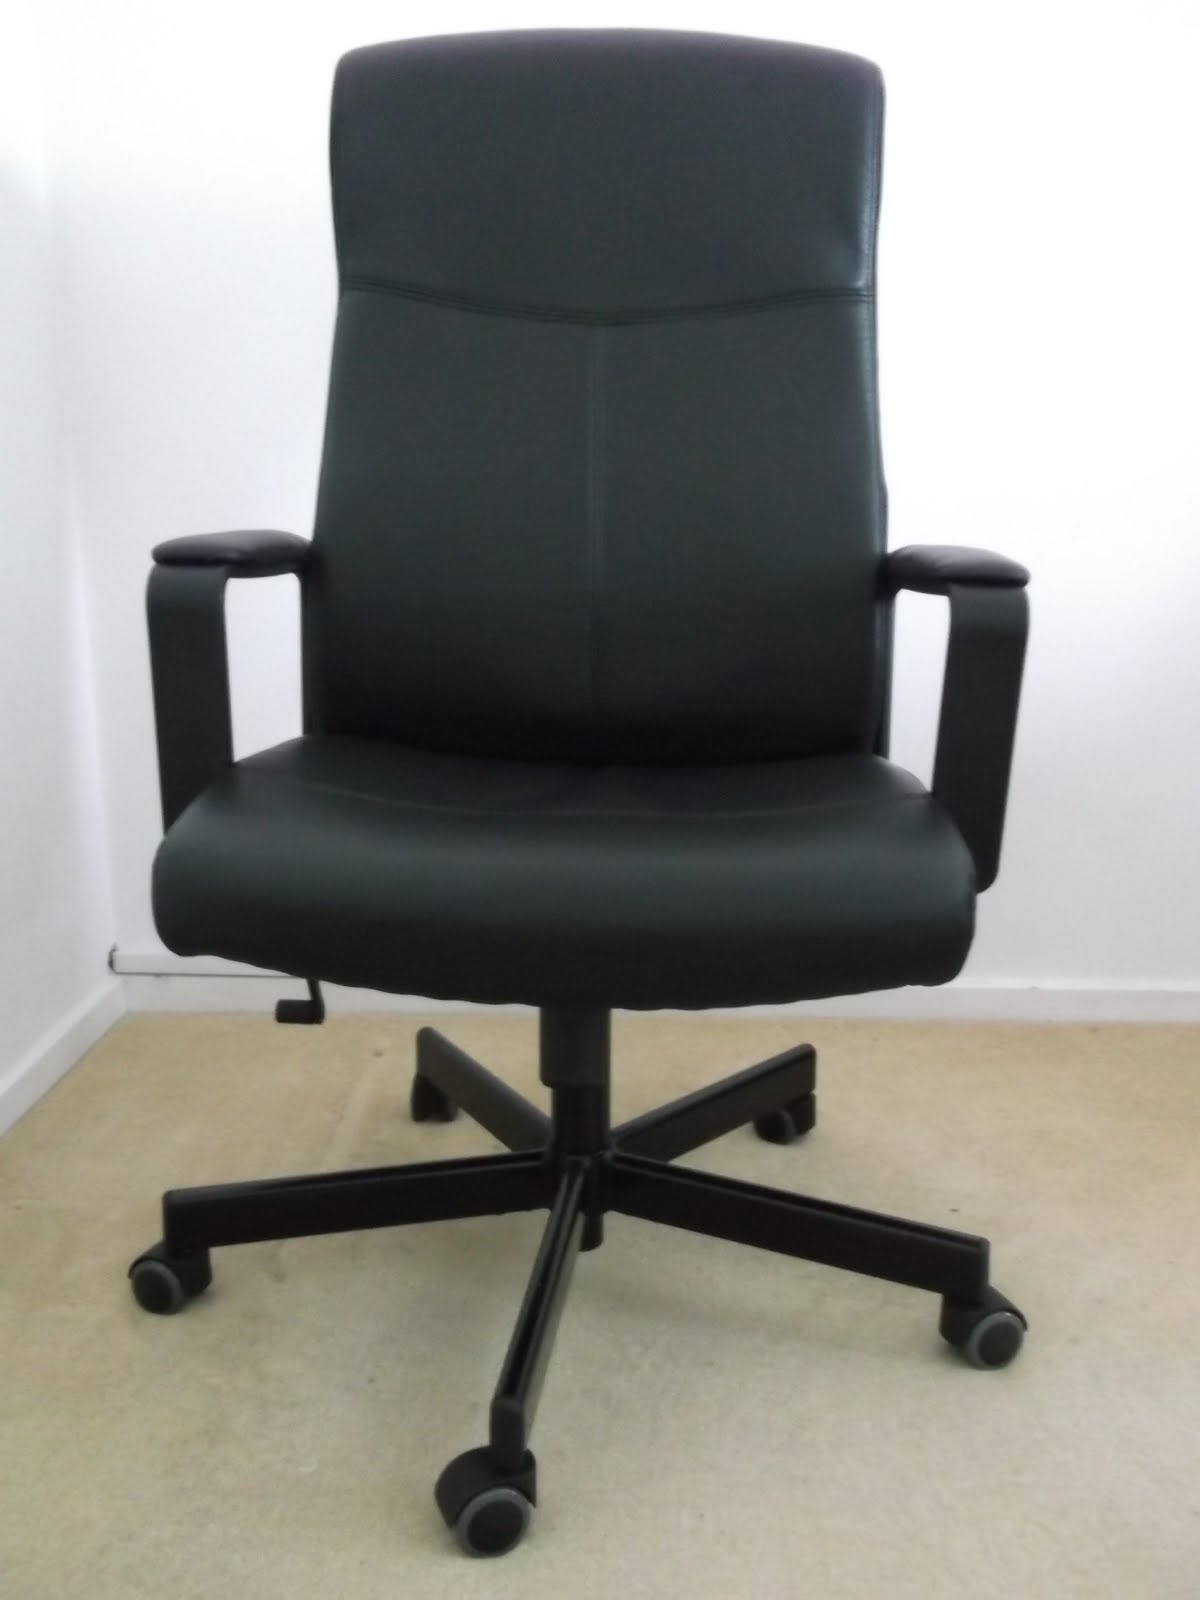 Ikea Malkolm Office Swivel Chair